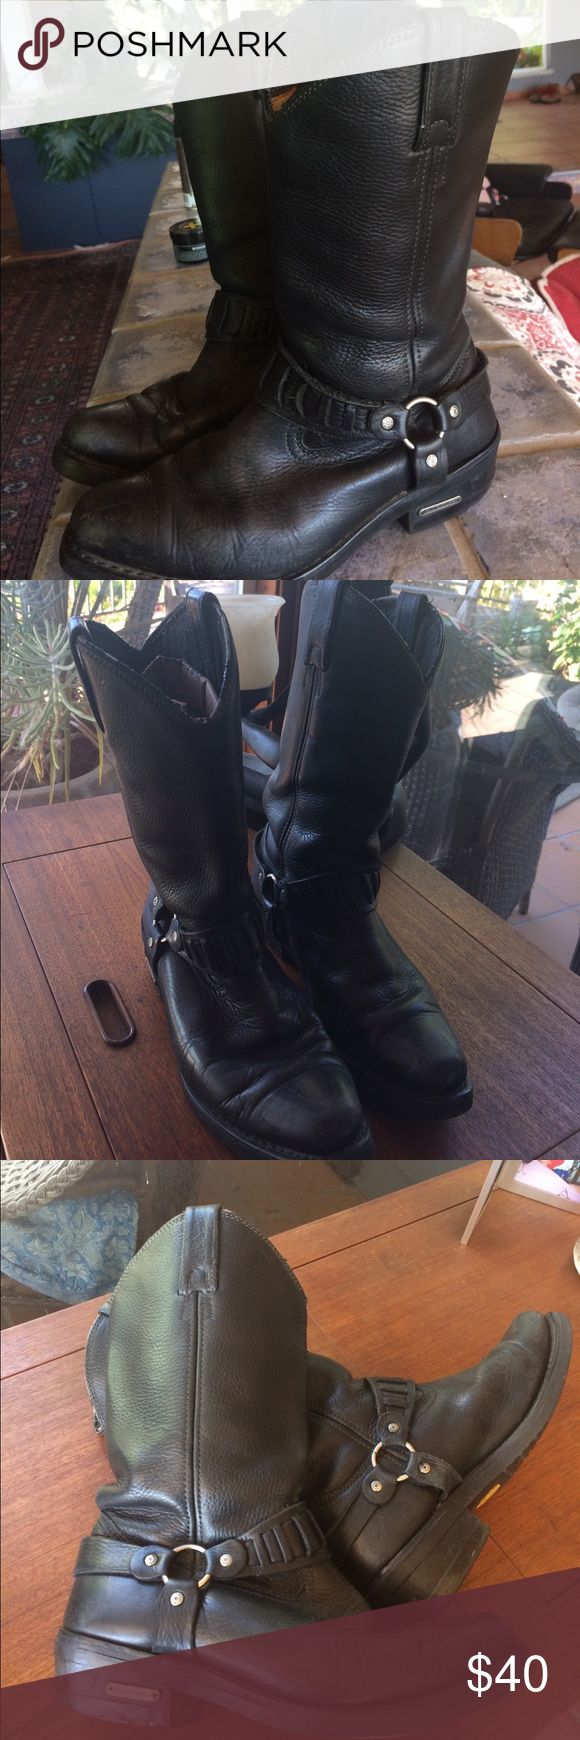 Harley Davidson black motorcycle boots Excellent black leather Harley Davidson motorcycle boots nicely broken in but in excellent condition except for a bit of wear on back heels and slight rubbing at top of boots as shown in photo Harley-Davidson Shoes Boots